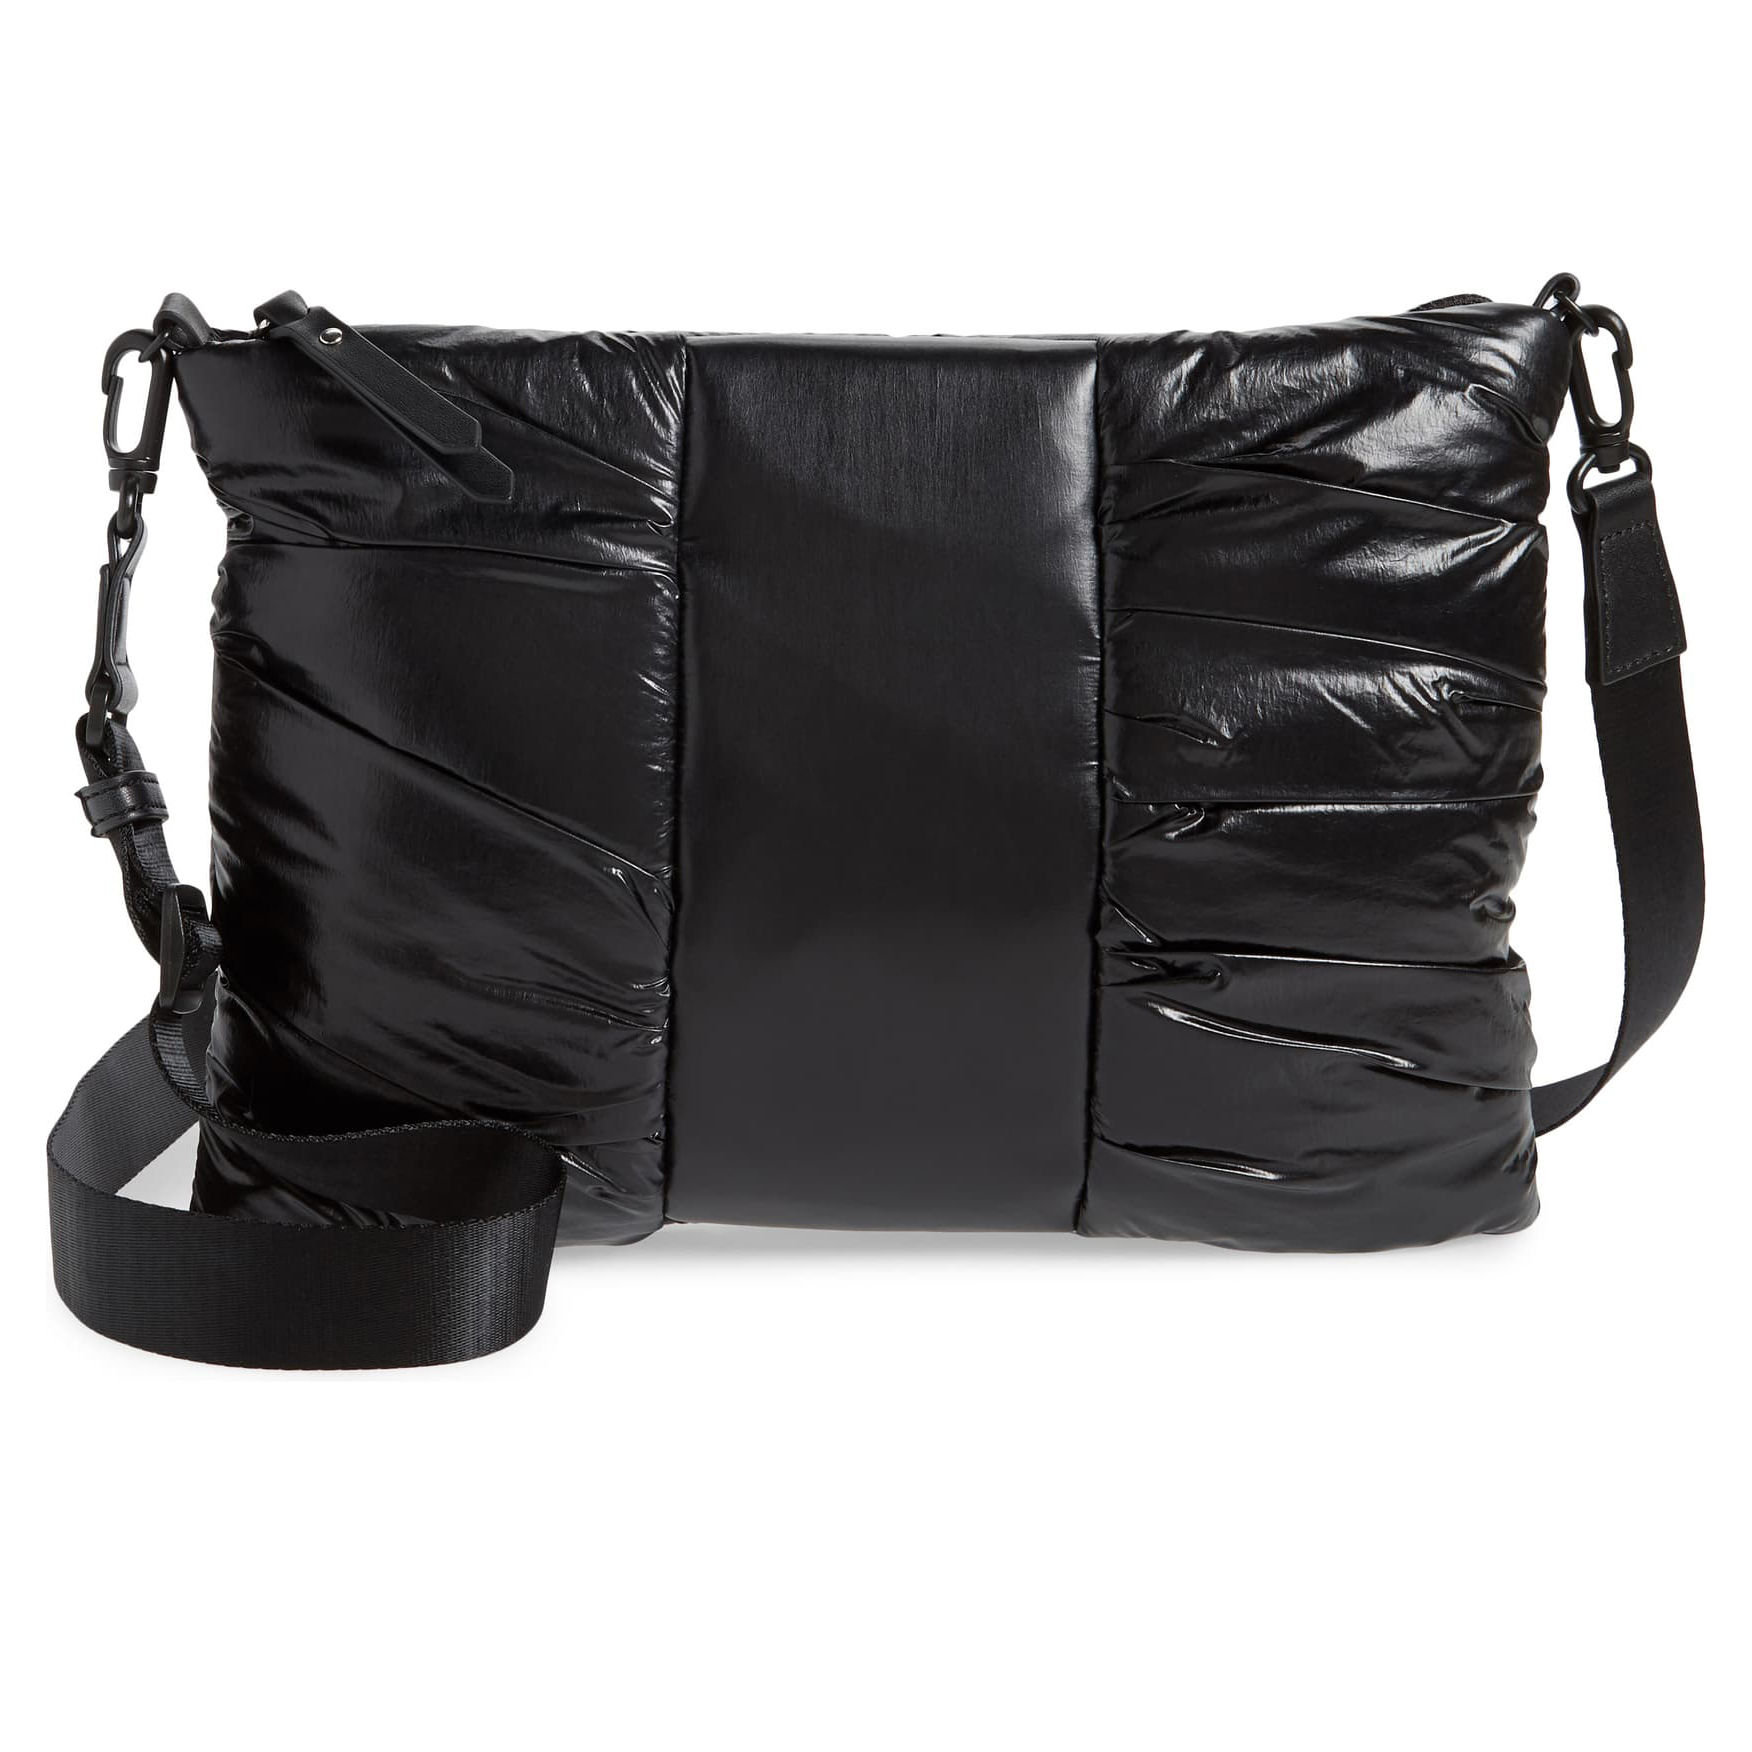 BP. Puffer Crossbody Bag